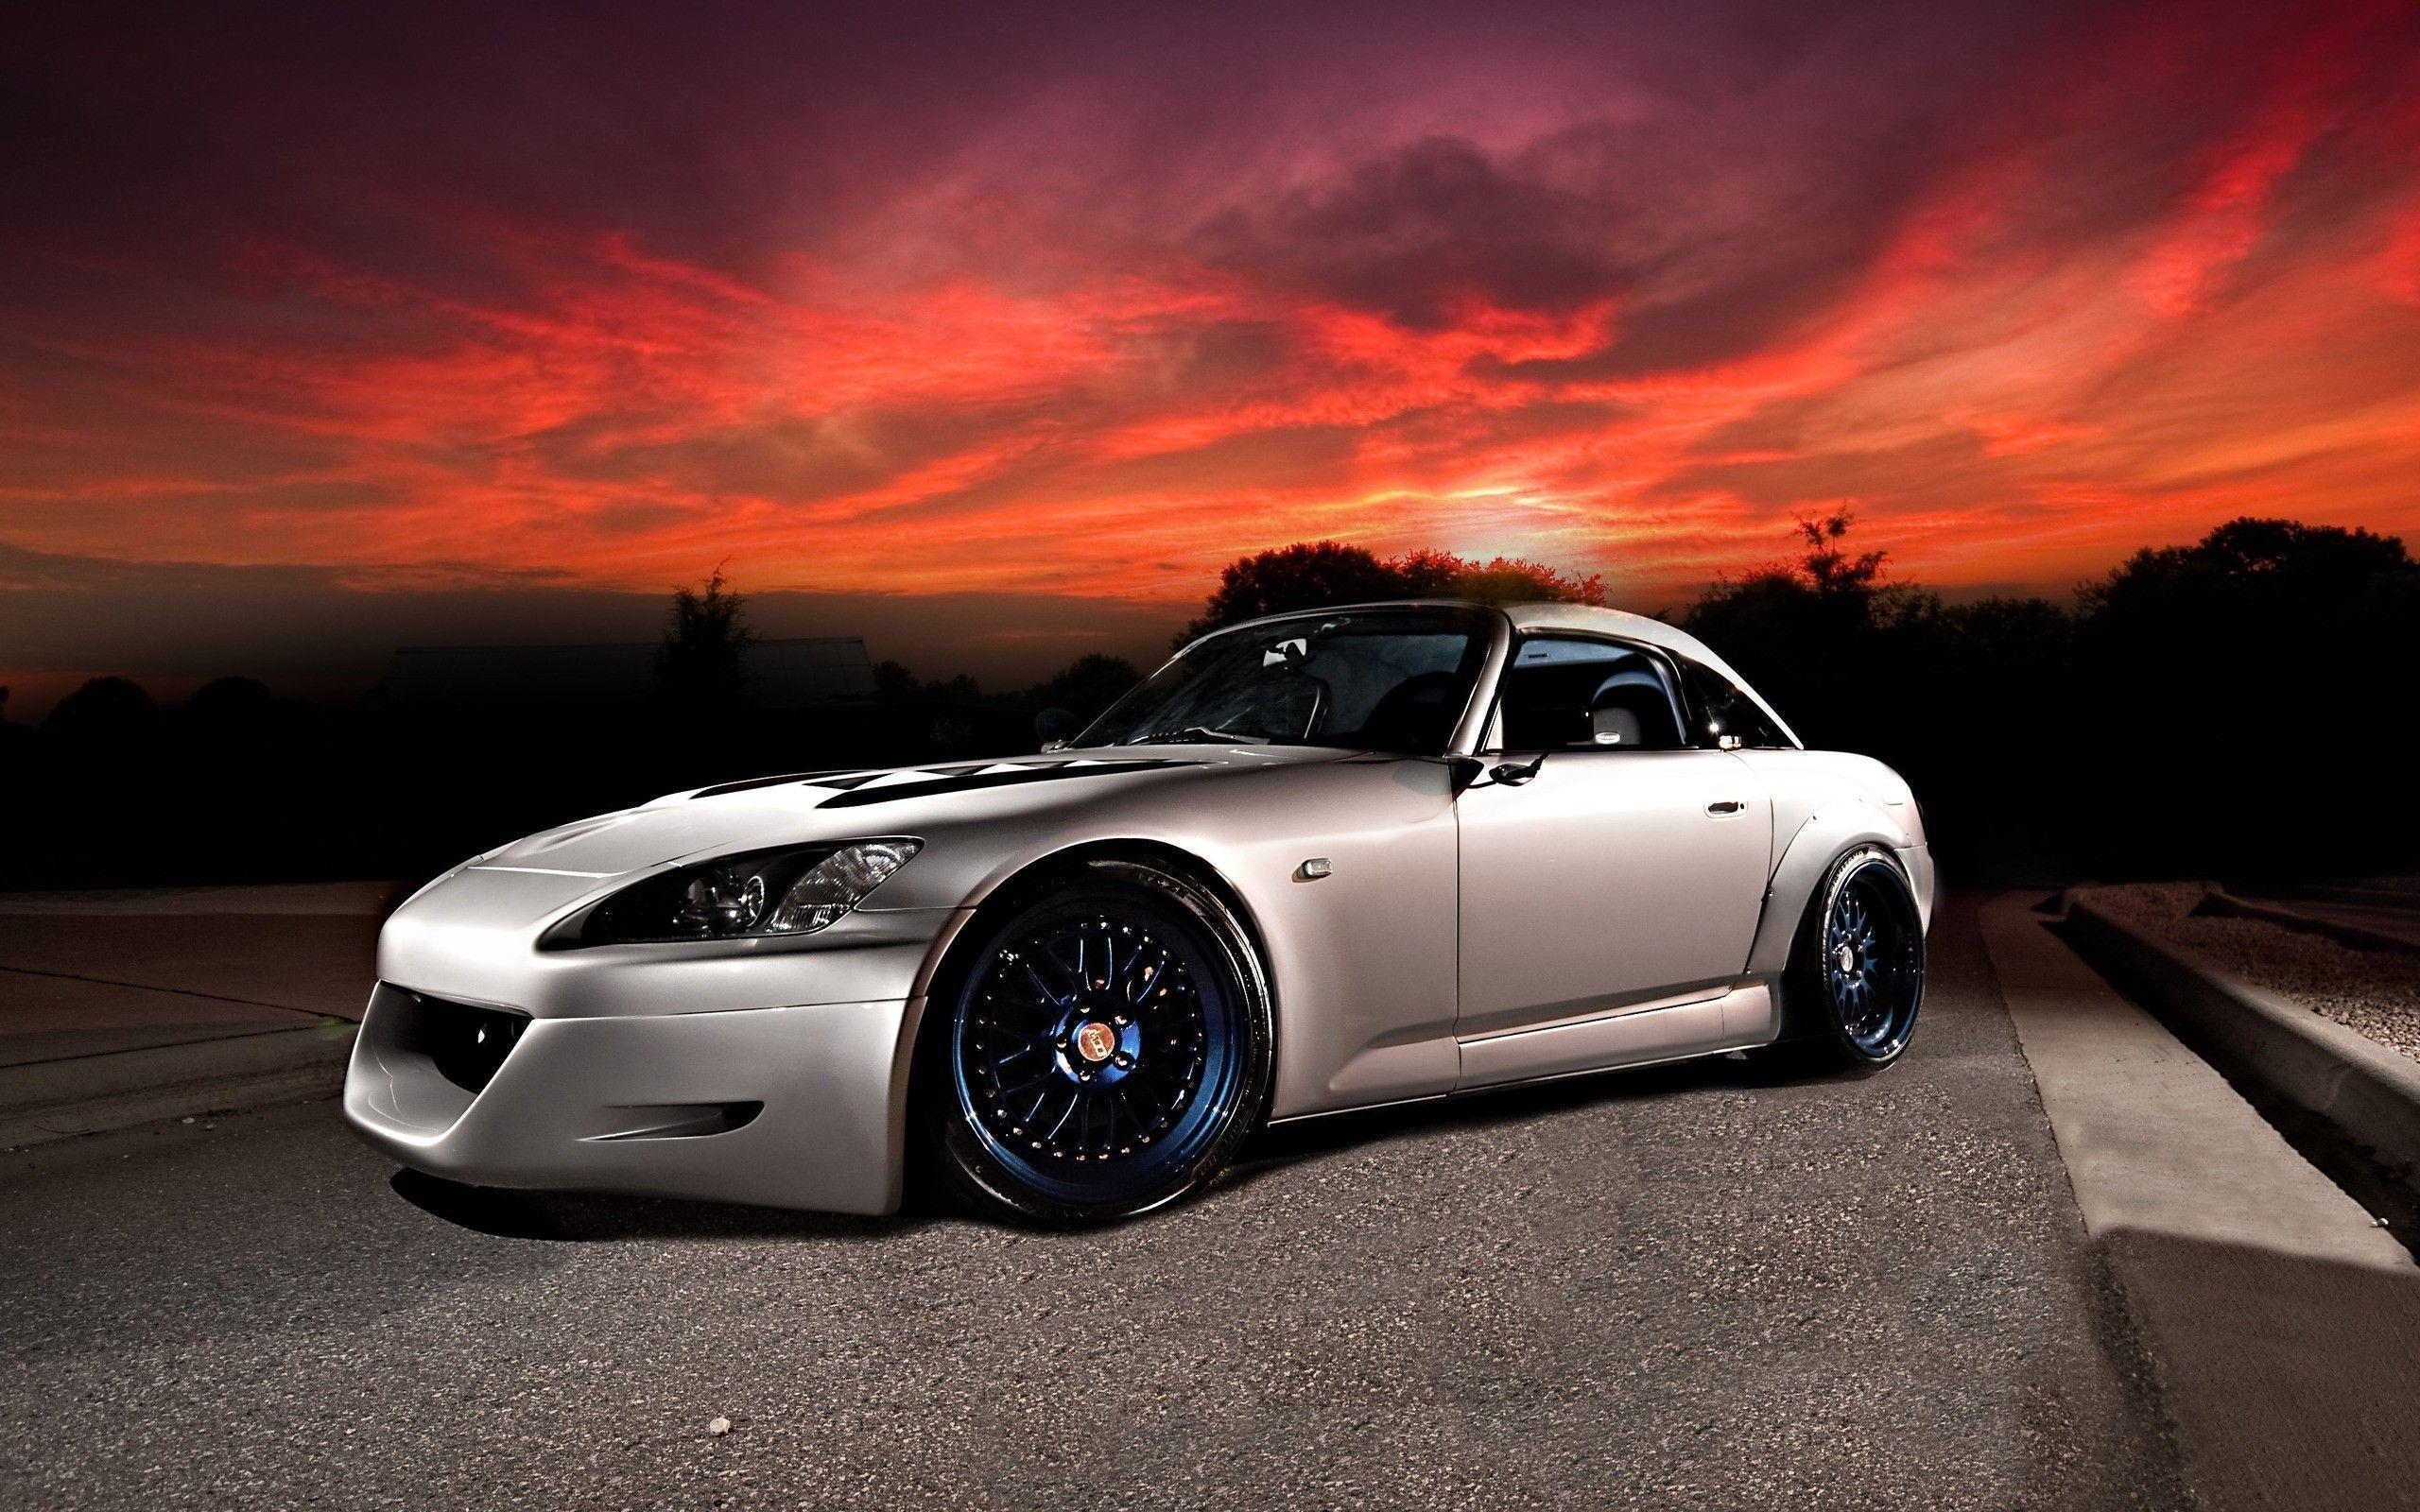 Honda s2000 HD wallpapers Image Gallery